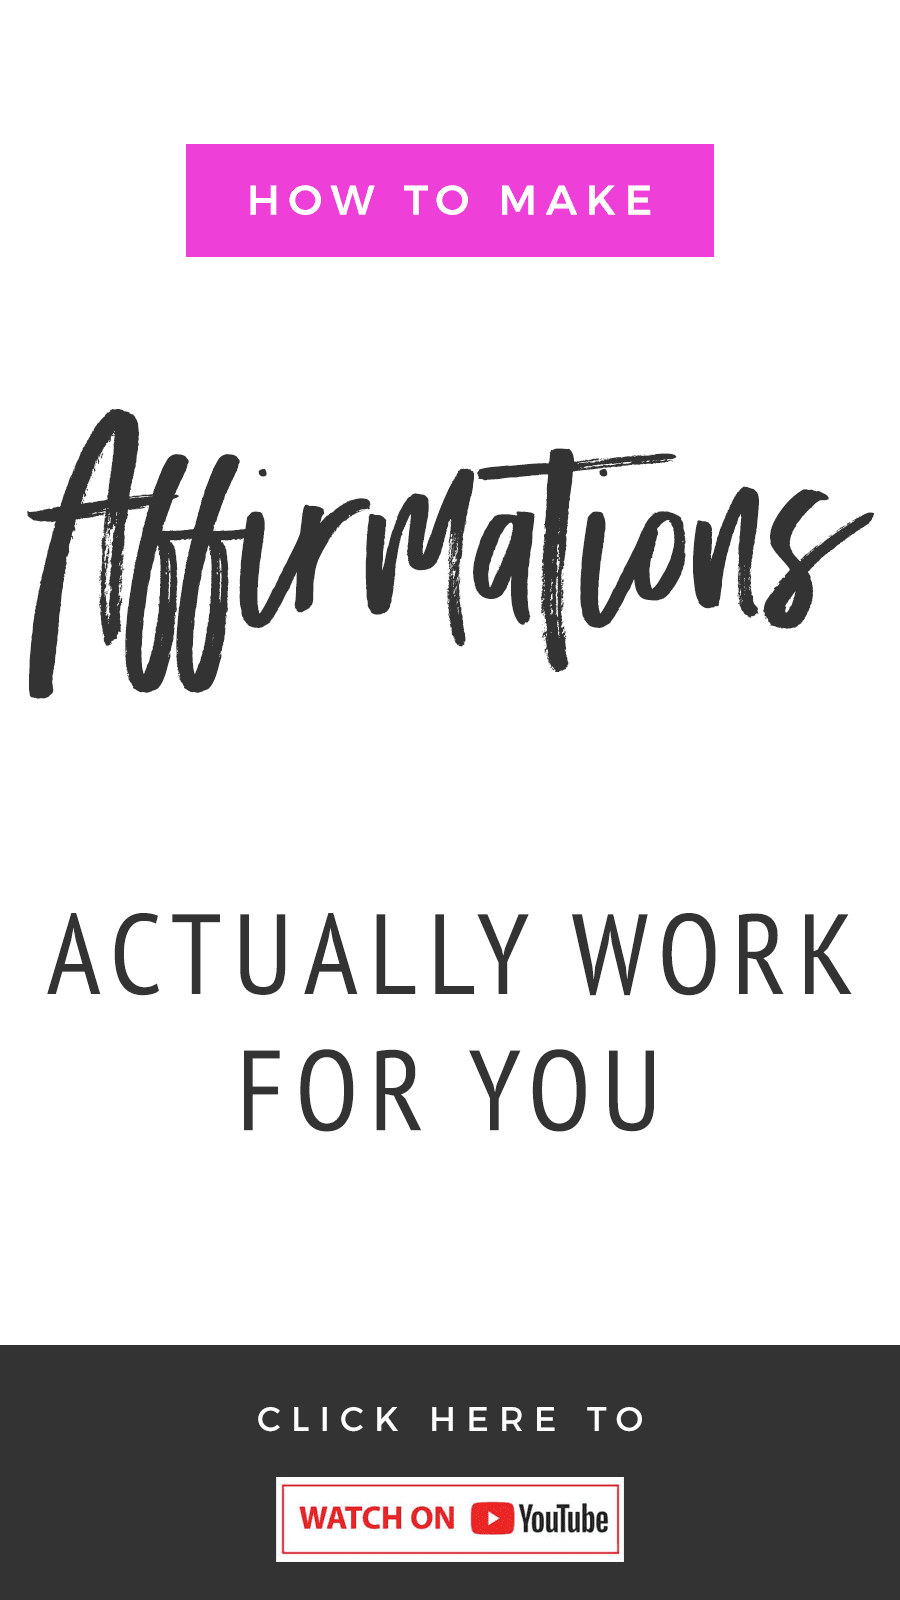 How To Make Affirmations Actually Work For You